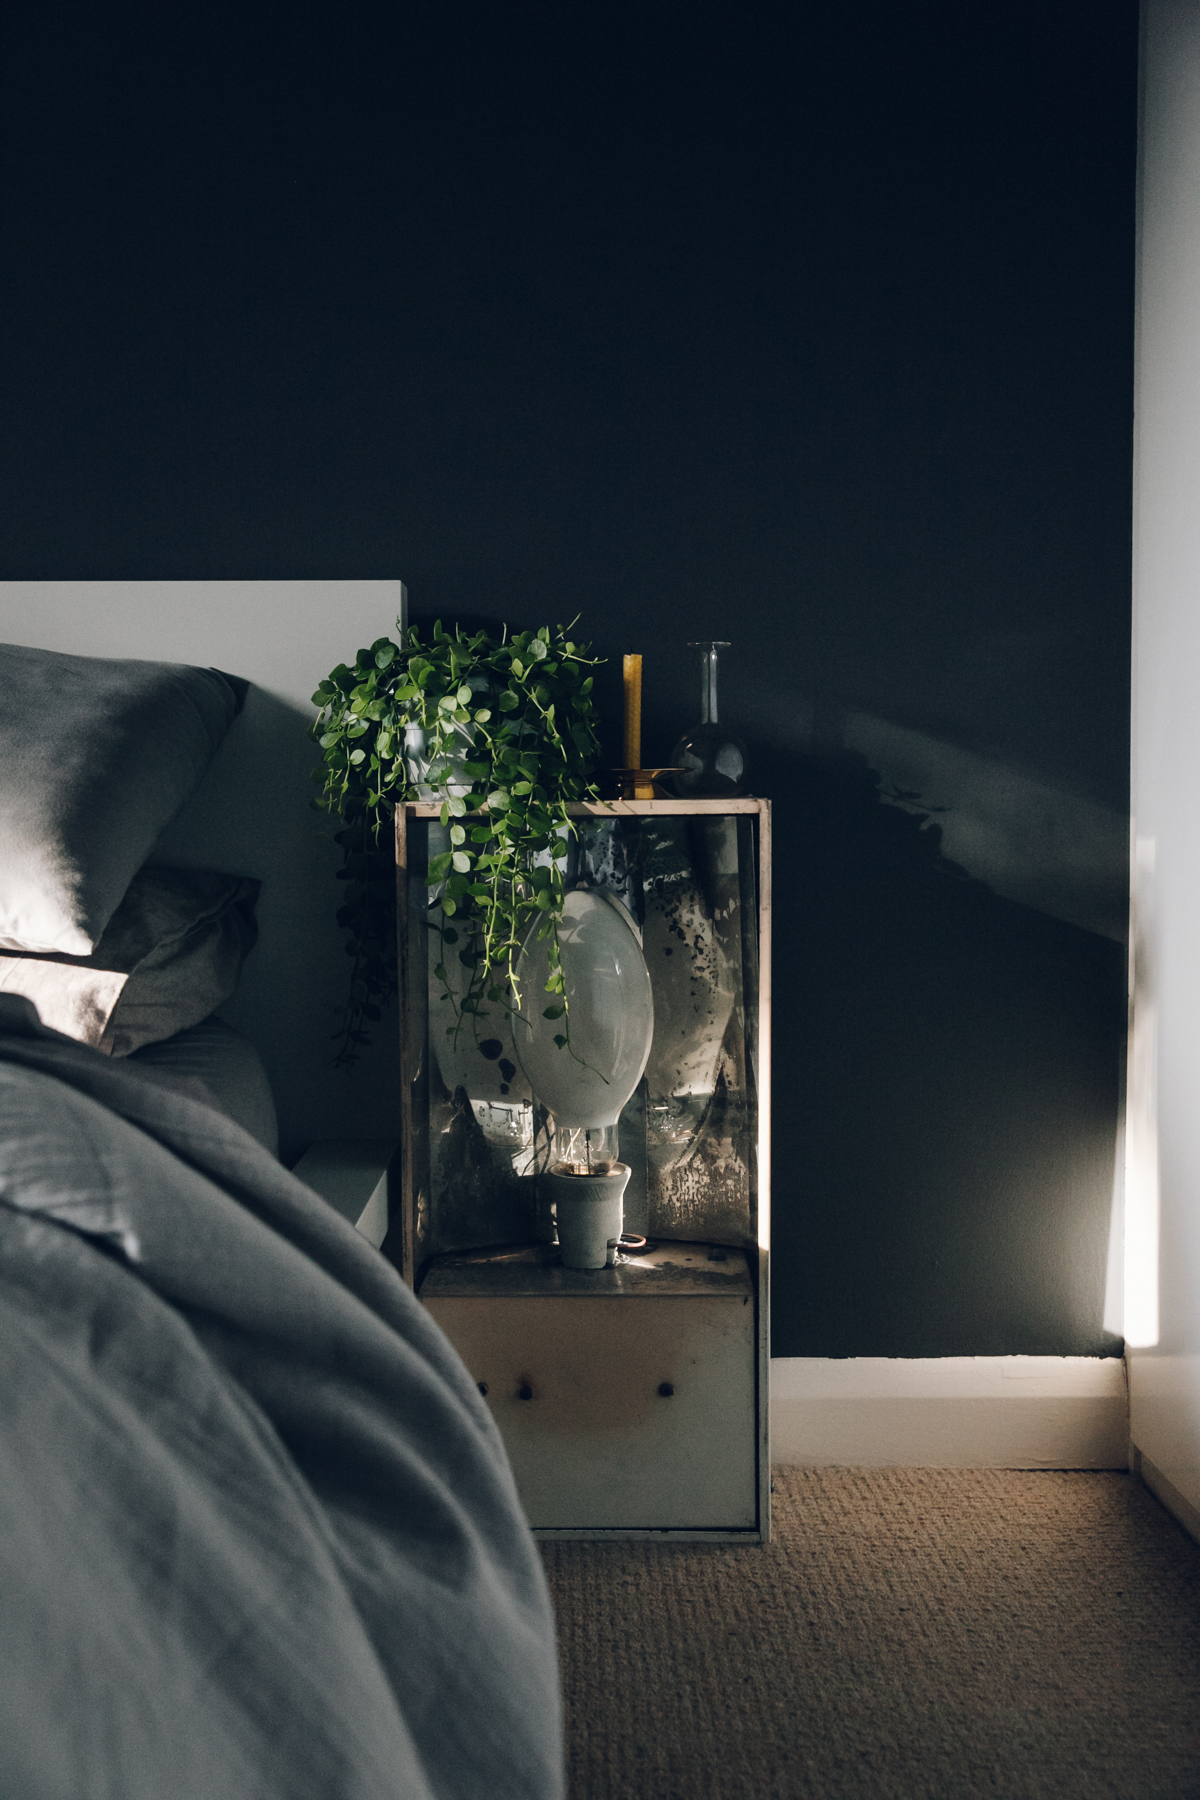 Bedside table with plants and candles.